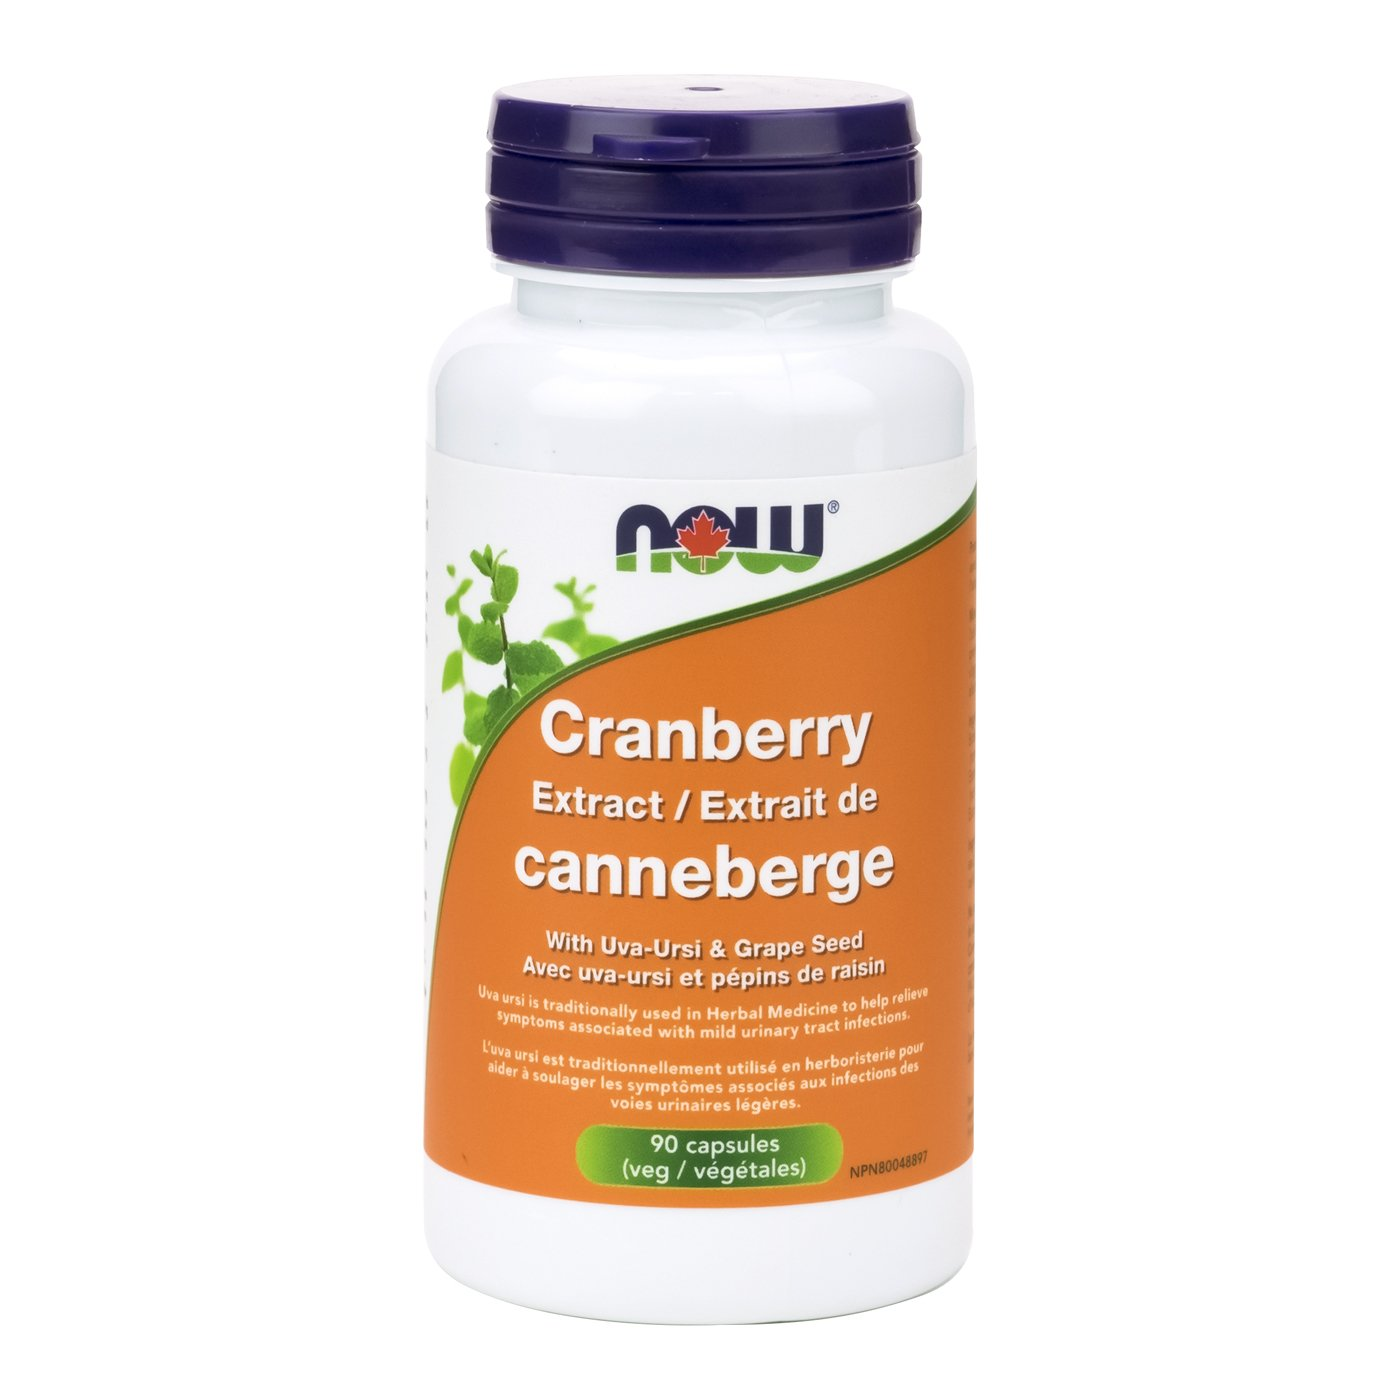 Now Cranberry Extract